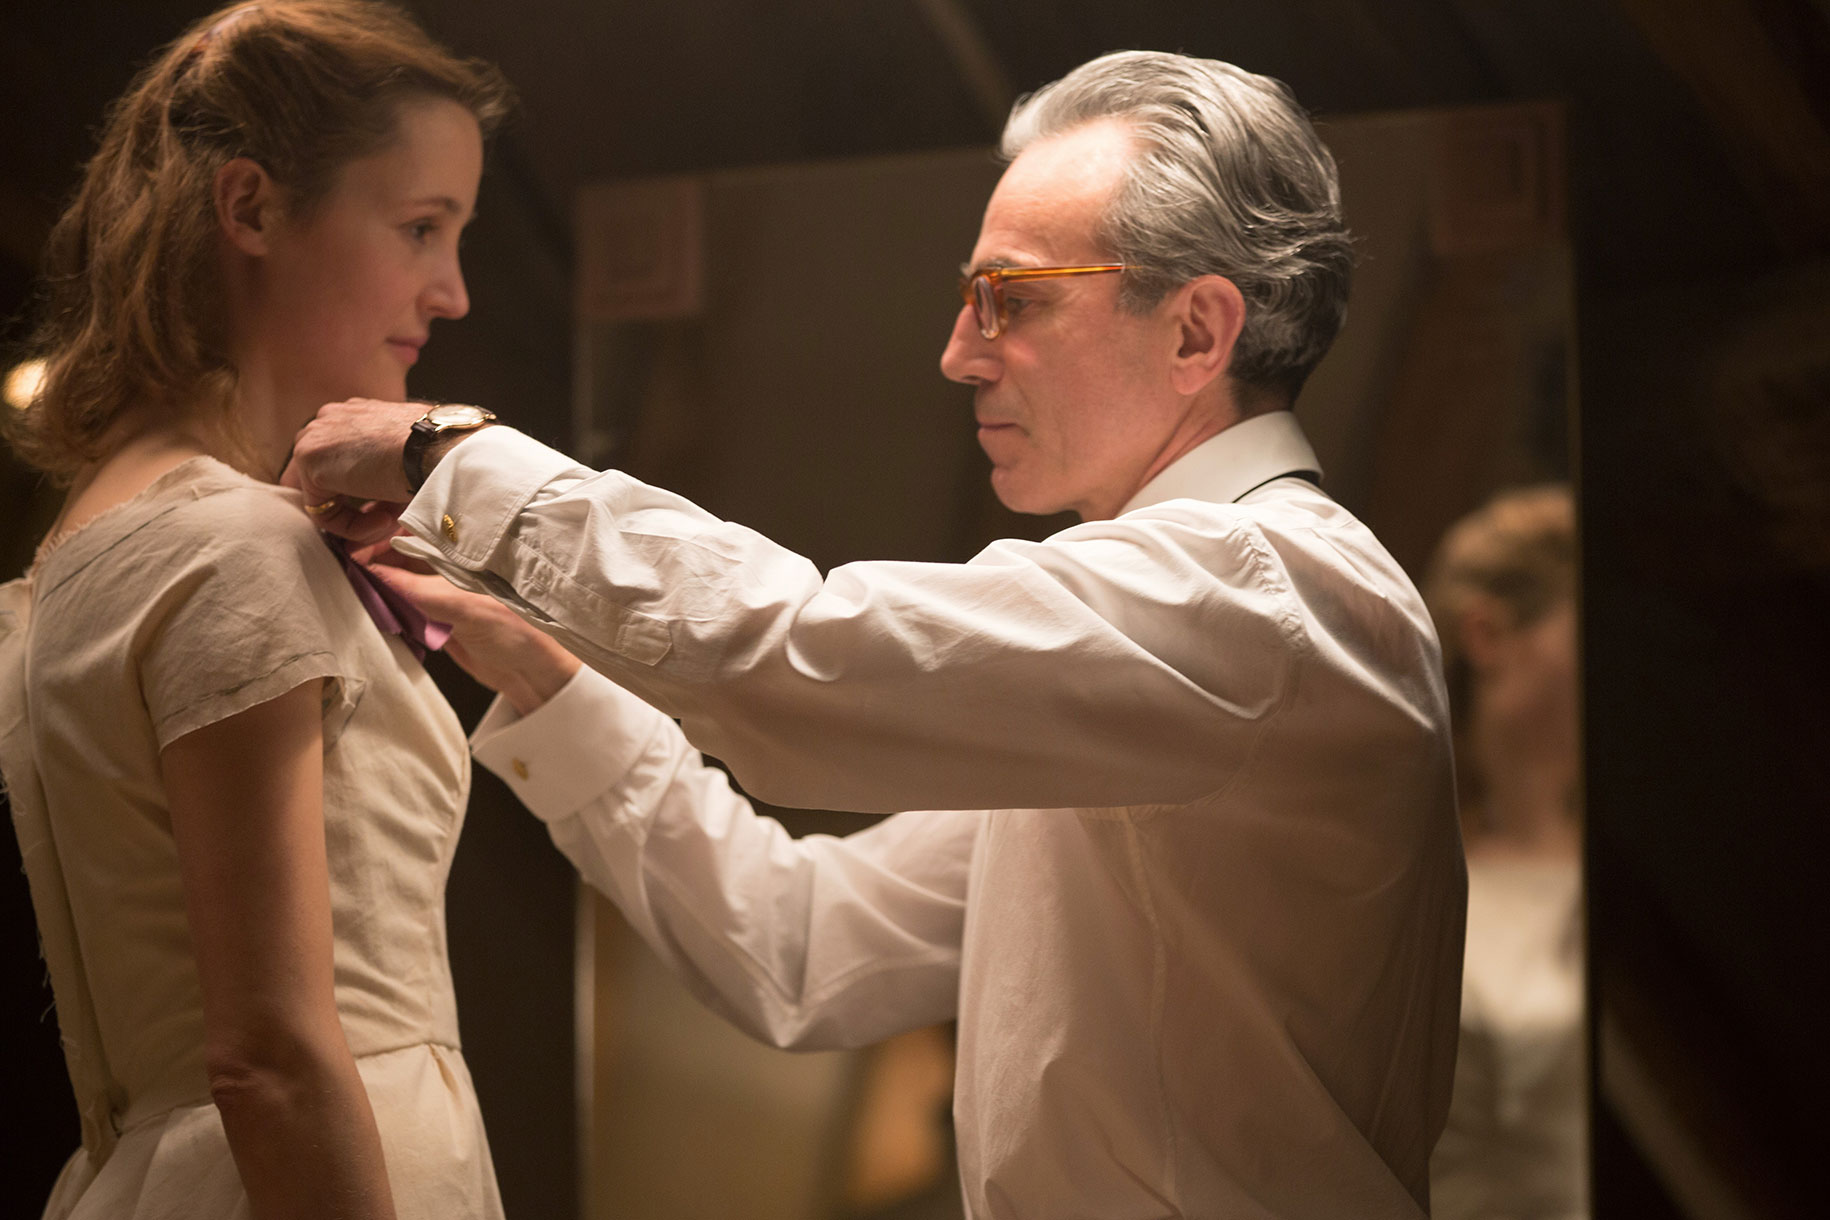 1515544263_phantom_thread_unit_daniel_da